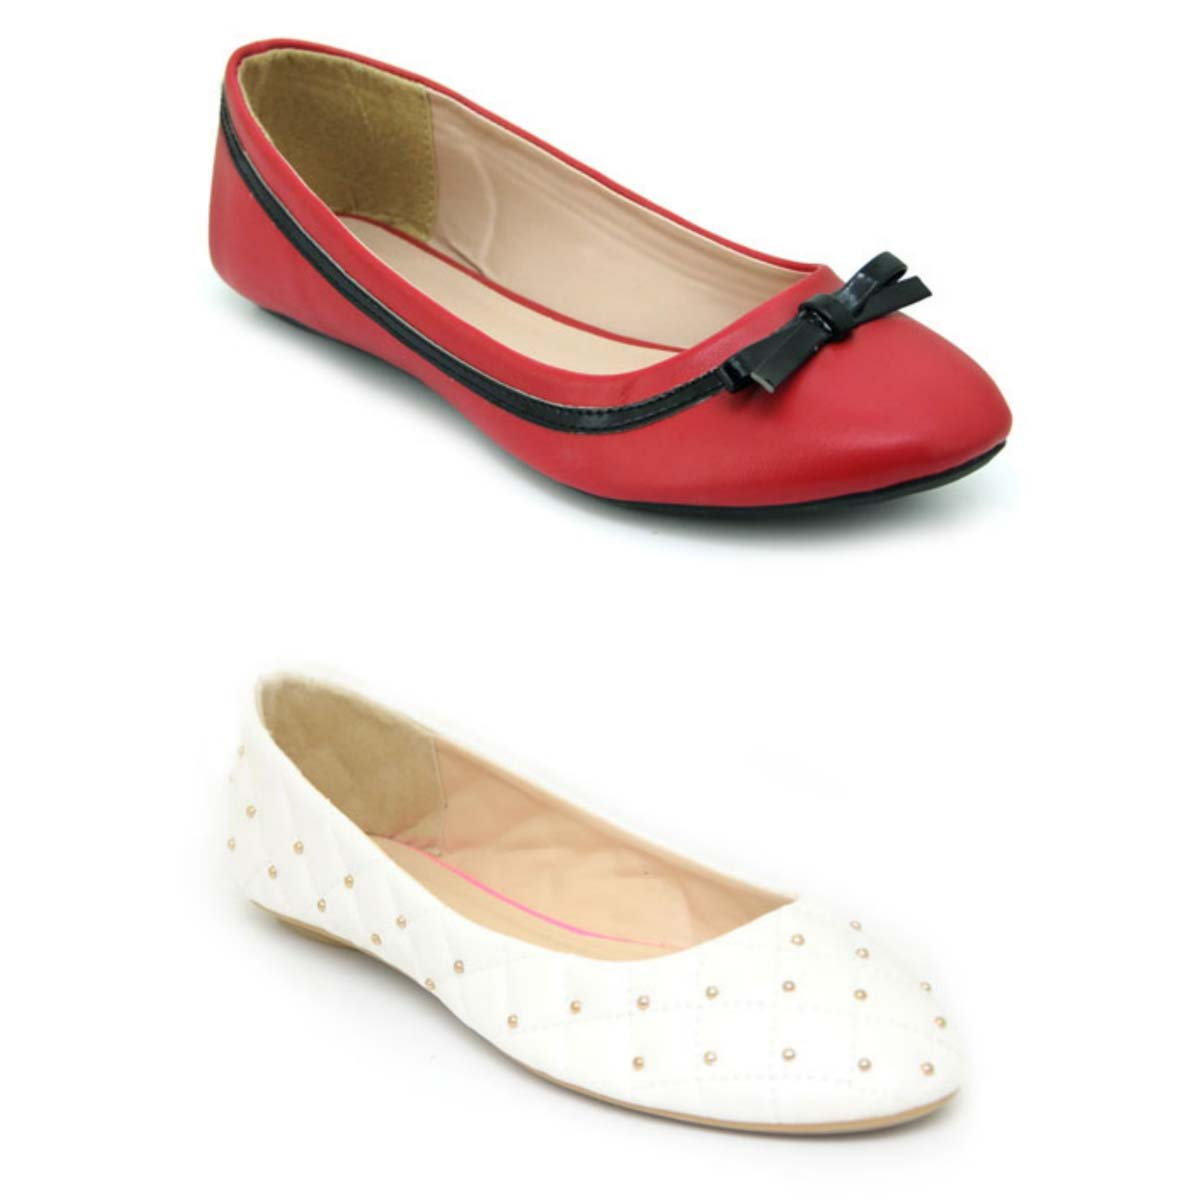 Bata Bata Ladies Casuals Red very cheap for sale jwImS64Cxc